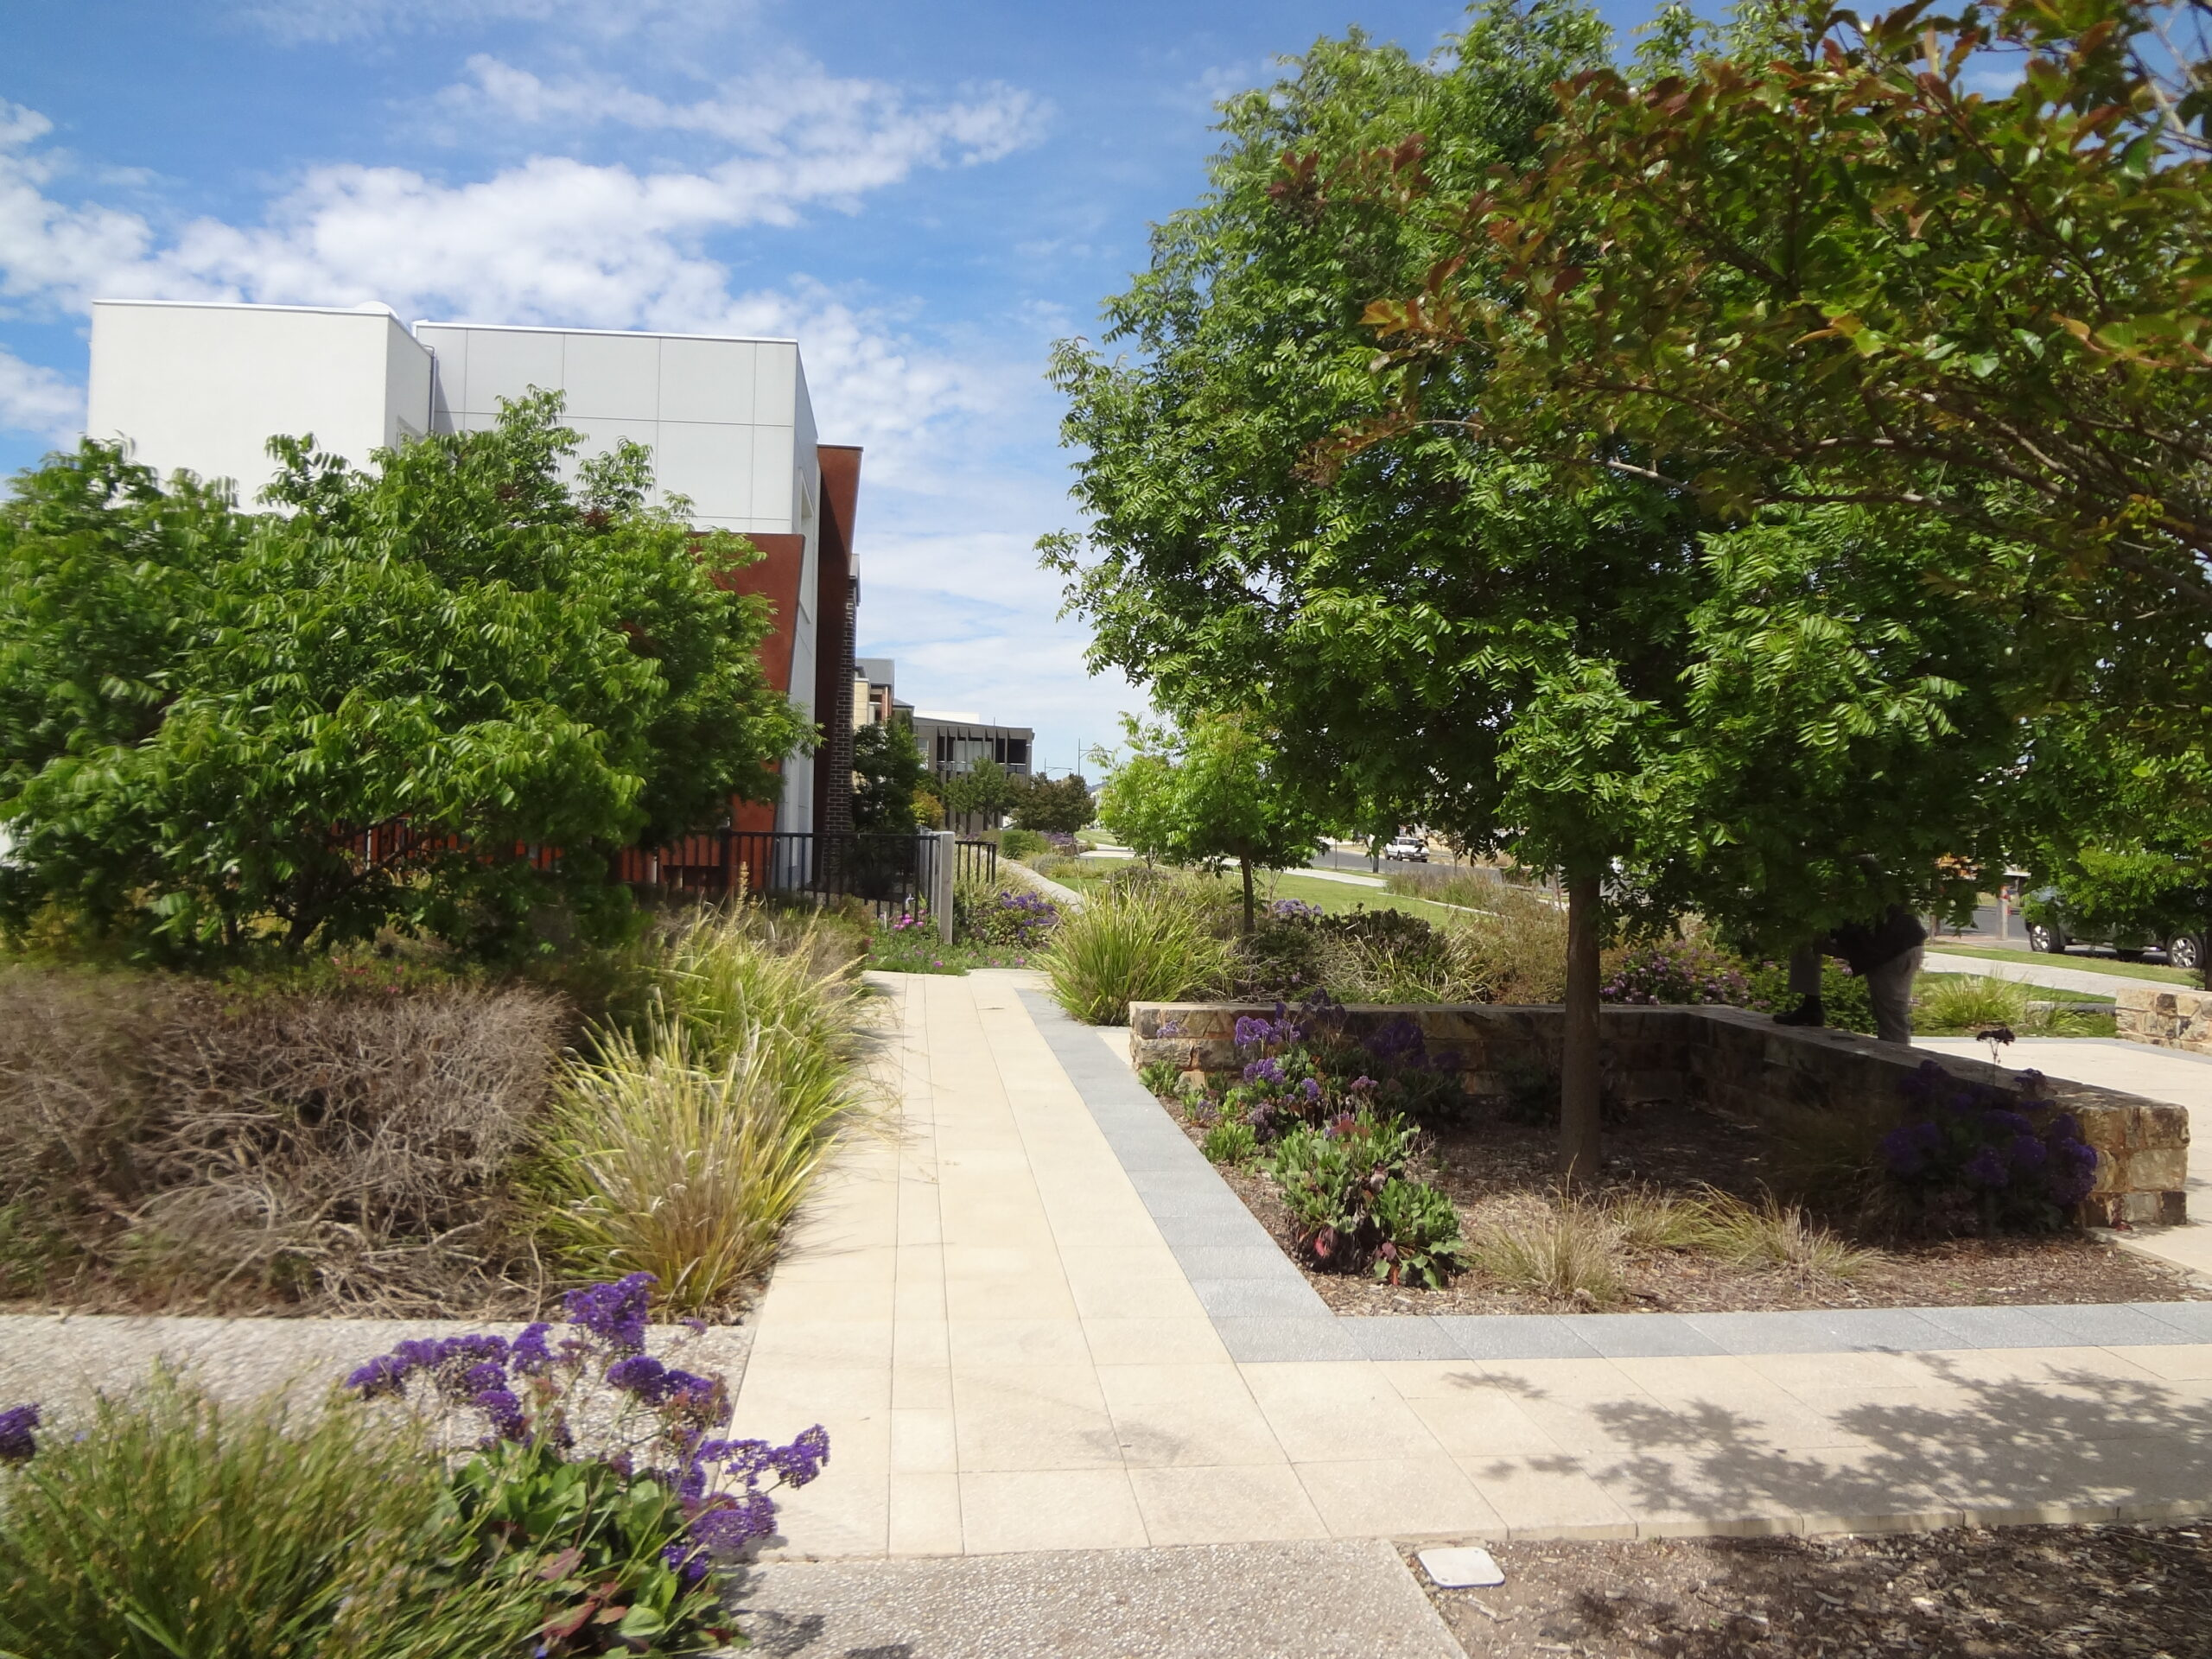 Parkway, Lightsview - stormwater harvesting and re-use